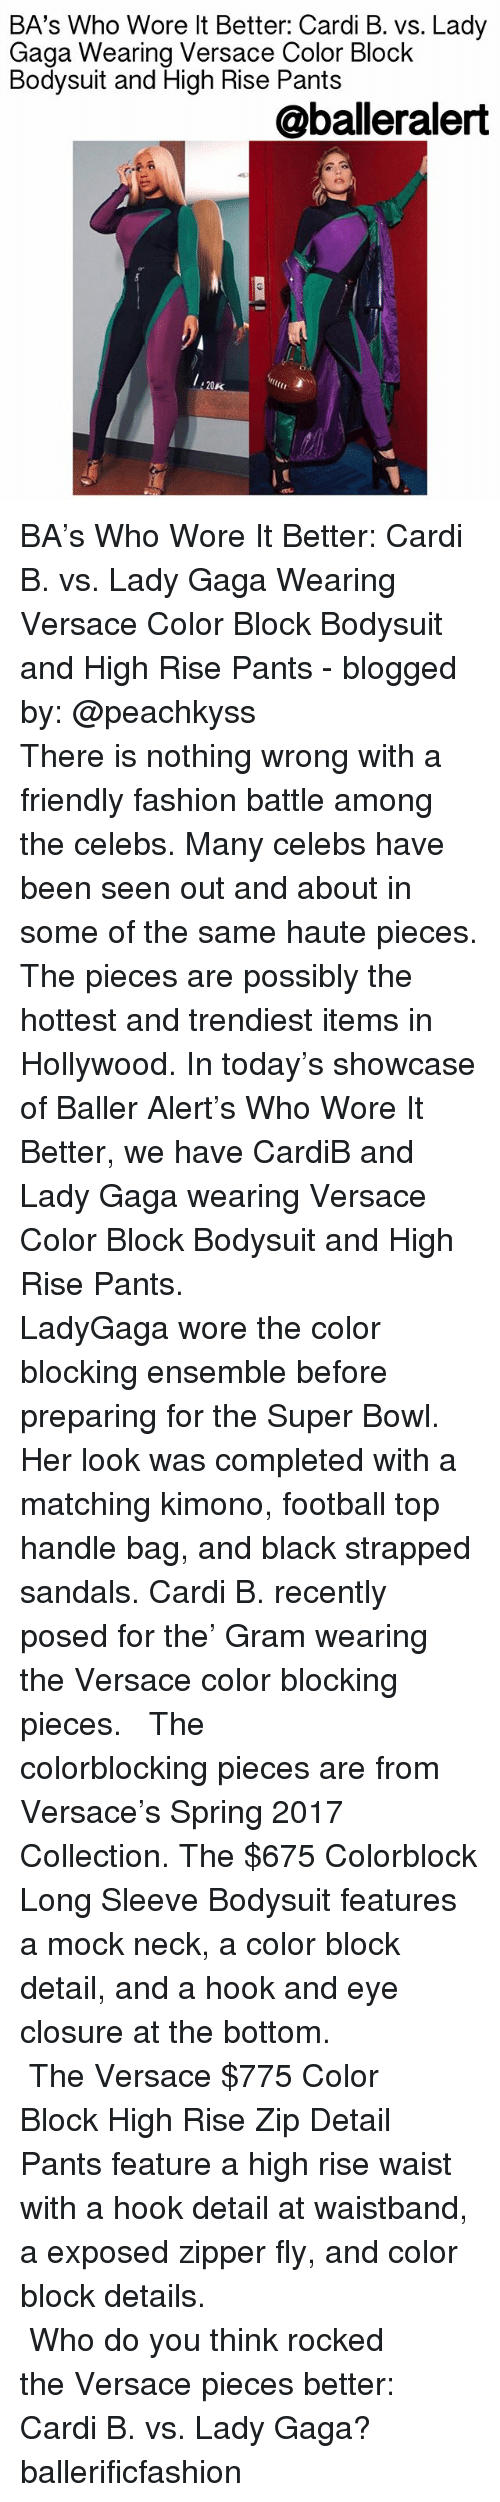 Baller Alert, Fashion, and Football: BA's Who Wore lt Better: Cardi B. vs. Lady  Gaga Wearina Versace Color Block  Bodysuit and High Rise Pants  @balleralert  20K BA's Who Wore It Better: Cardi B. vs. Lady Gaga Wearing Versace Color Block Bodysuit and High Rise Pants - blogged by: @peachkyss ⠀⠀⠀⠀⠀⠀⠀⠀⠀ ⠀⠀⠀⠀⠀⠀⠀⠀⠀ There is nothing wrong with a friendly fashion battle among the celebs. Many celebs have been seen out and about in some of the same haute pieces. The pieces are possibly the hottest and trendiest items in Hollywood. In today's showcase of Baller Alert's Who Wore It Better, we have CardiB and Lady Gaga wearing Versace Color Block Bodysuit and High Rise Pants. ⠀⠀⠀⠀⠀⠀⠀⠀⠀ ⠀⠀⠀⠀⠀⠀⠀⠀⠀ LadyGaga wore the color blocking ensemble before preparing for the Super Bowl. Her look was completed with a matching kimono, football top handle bag, and black strapped sandals. Cardi B. recently posed for the' Gram wearing the Versace color blocking pieces. ⠀⠀⠀⠀⠀⠀⠀⠀⠀ ⠀⠀⠀⠀⠀⠀⠀⠀⠀ The colorblocking pieces are from Versace's Spring 2017 Collection. The $675 Colorblock Long Sleeve Bodysuit features a mock neck, a color block detail, and a hook and eye closure at the bottom. ⠀⠀⠀⠀⠀⠀⠀⠀⠀ ⠀⠀⠀⠀⠀⠀⠀⠀⠀ The Versace $775 Color Block High Rise Zip Detail Pants feature a high rise waist with a hook detail at waistband, a exposed zipper fly, and color block details. ⠀⠀⠀⠀⠀⠀⠀⠀⠀ ⠀⠀⠀⠀⠀⠀⠀⠀⠀ ⠀⠀⠀⠀⠀⠀⠀⠀⠀ ⠀⠀⠀⠀⠀⠀⠀⠀⠀ Who do you think rocked the Versace pieces better: Cardi B. vs. Lady Gaga? ballerificfashion